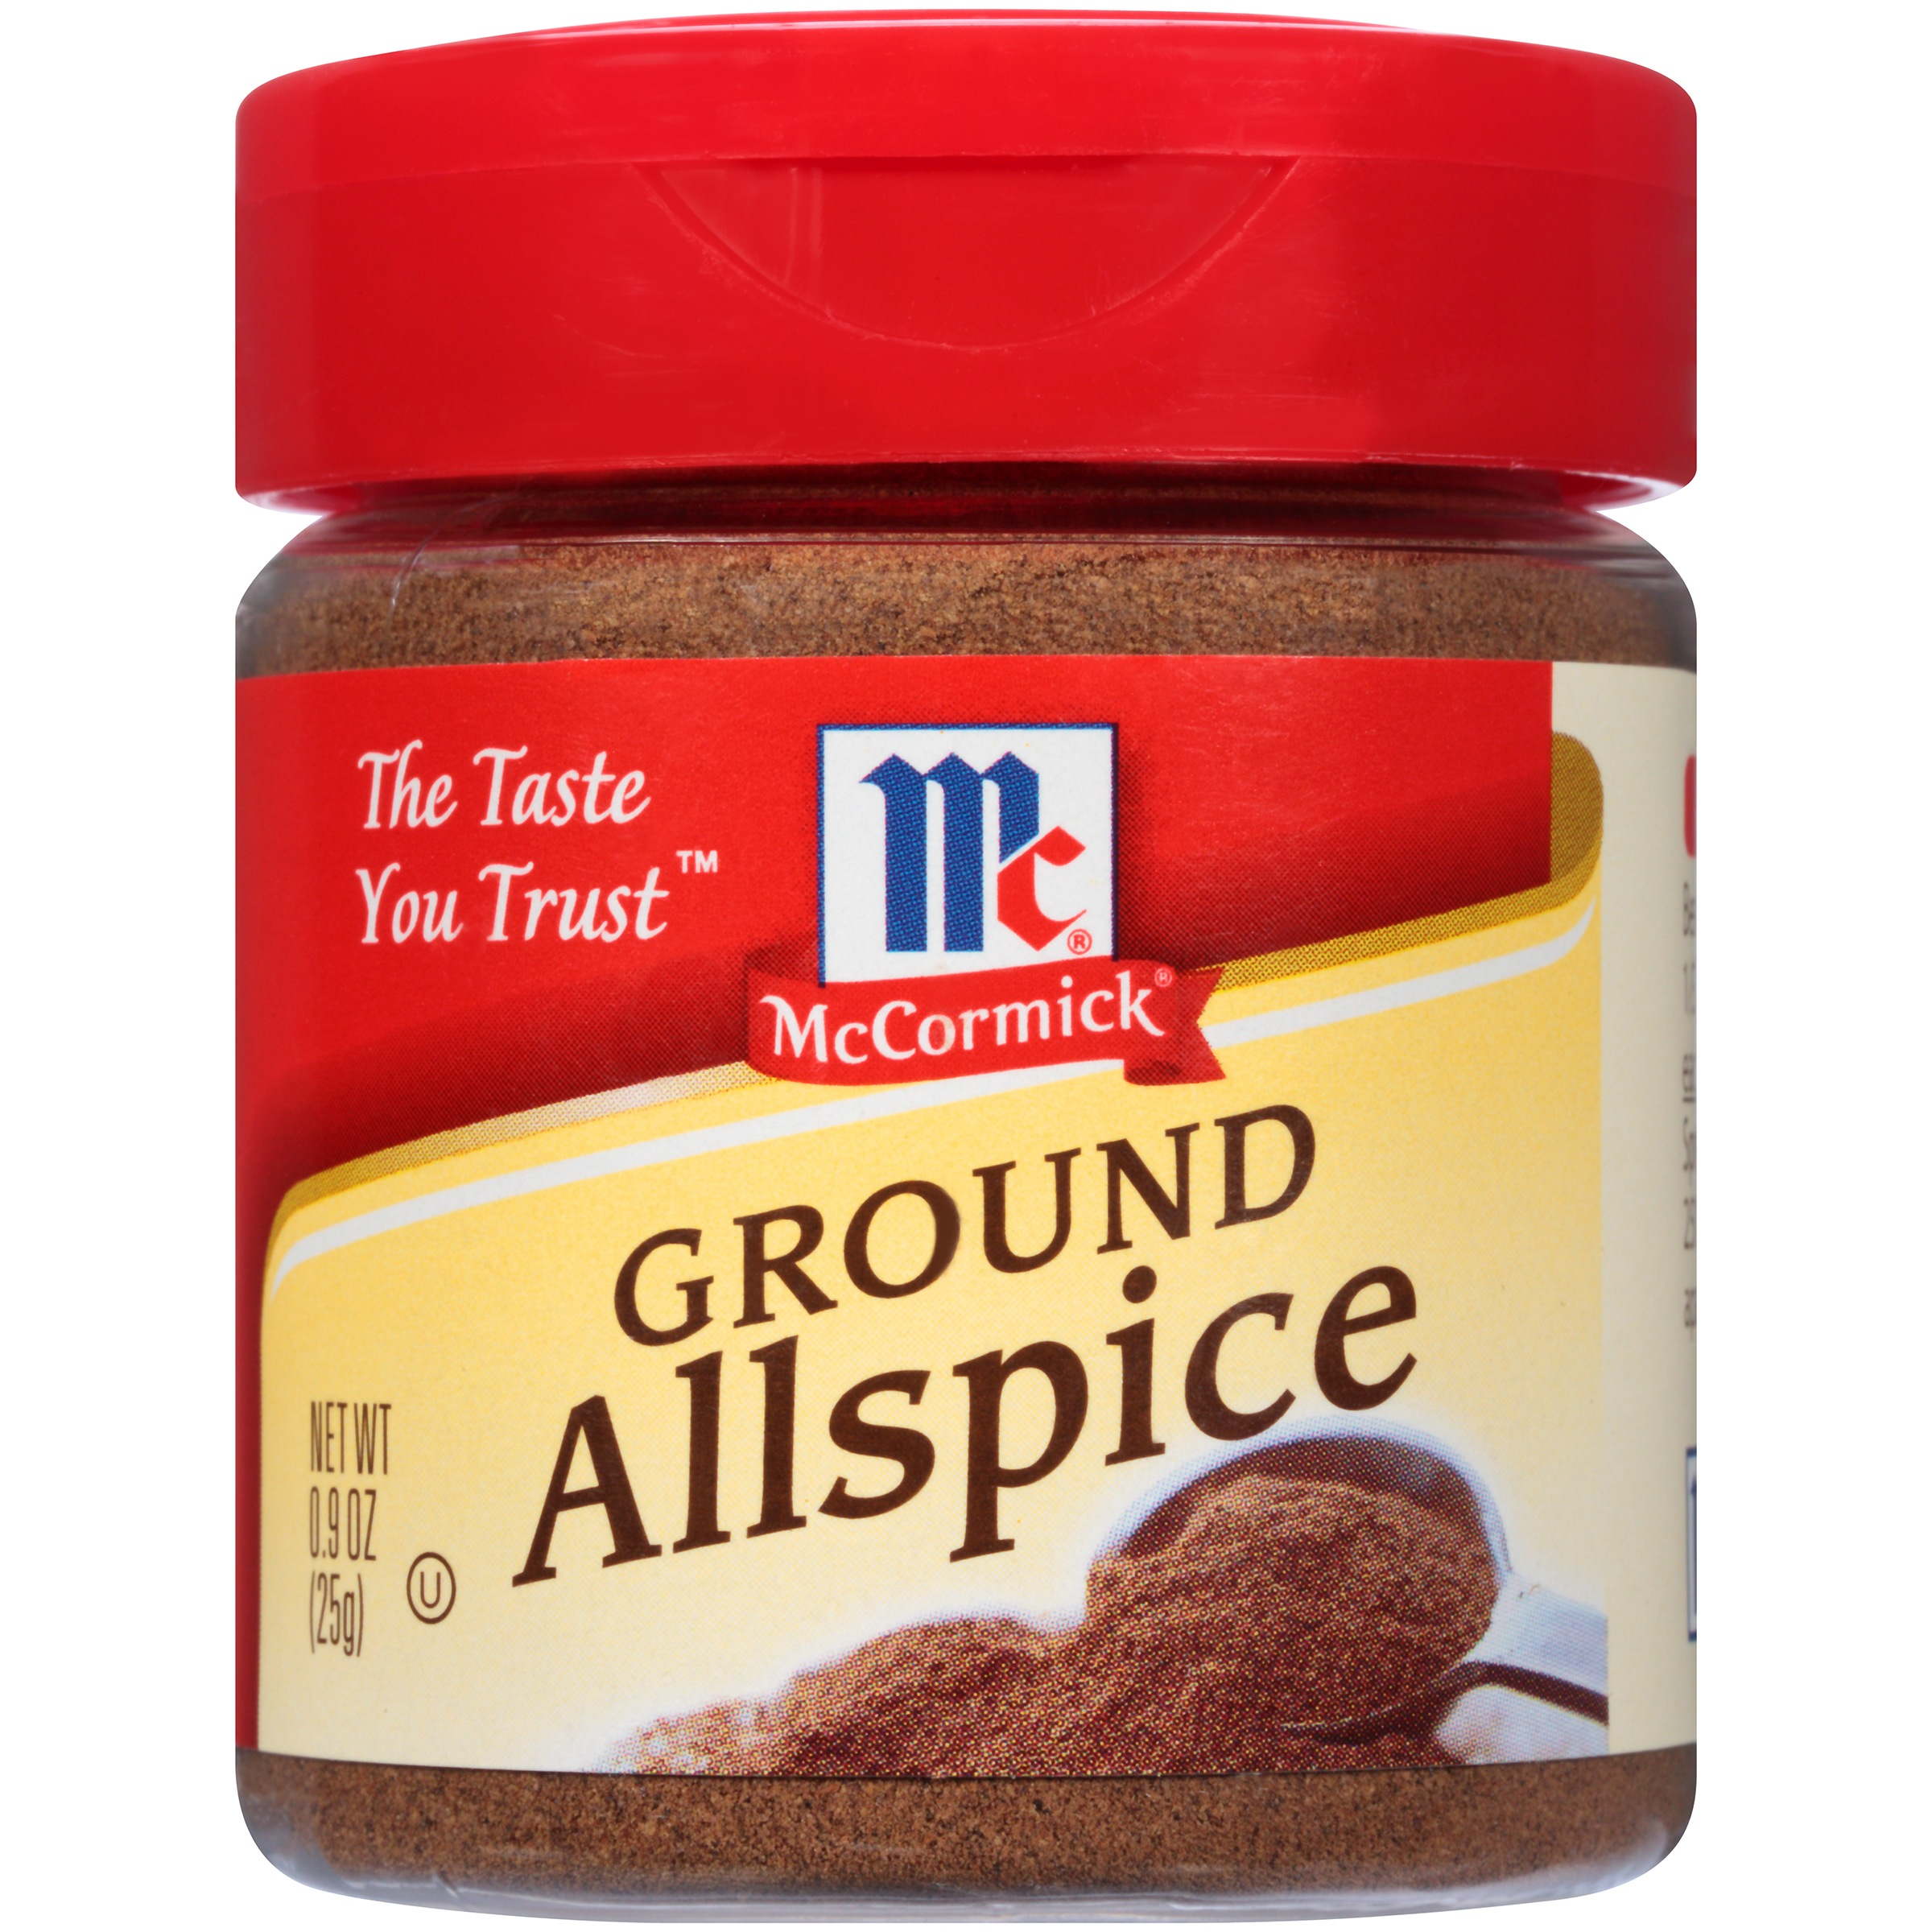 McCormick Specialty Herbs And Spices Ground Allspice, .9 oz by McCormick & Co., Inc.